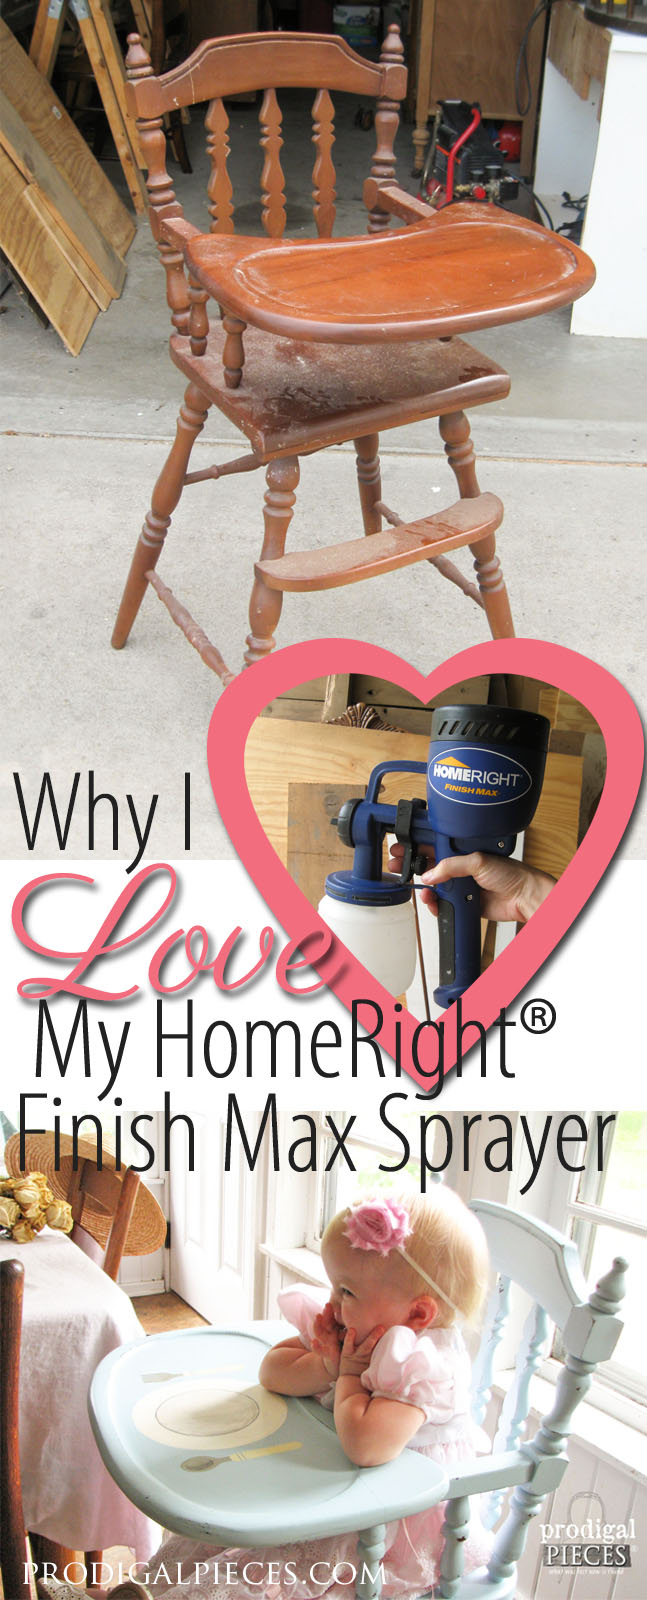 Why I Love My HomeRight Finish Max Paint Sprayer by Prodigal Pieces | www.prodigalpieces.com